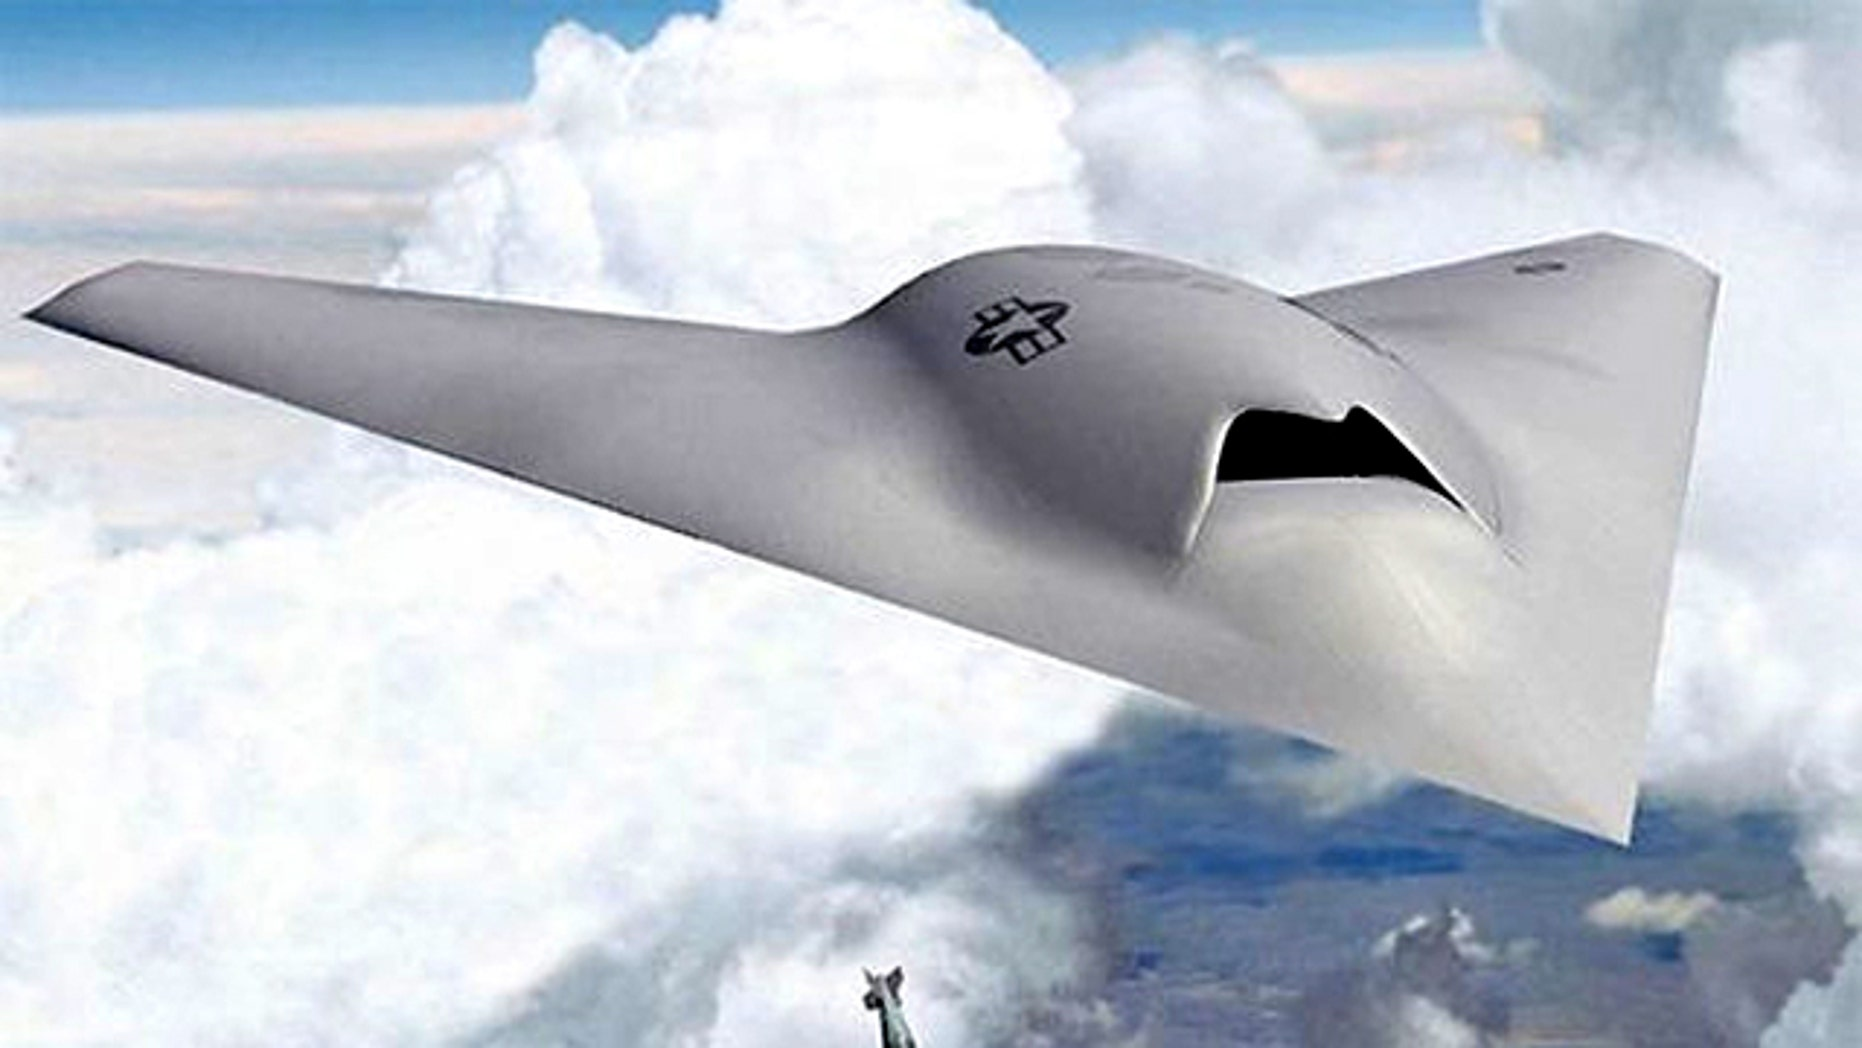 The Boeing Phantom Ray, just one of the dozens of unmanned aerial vehicles currently under development.